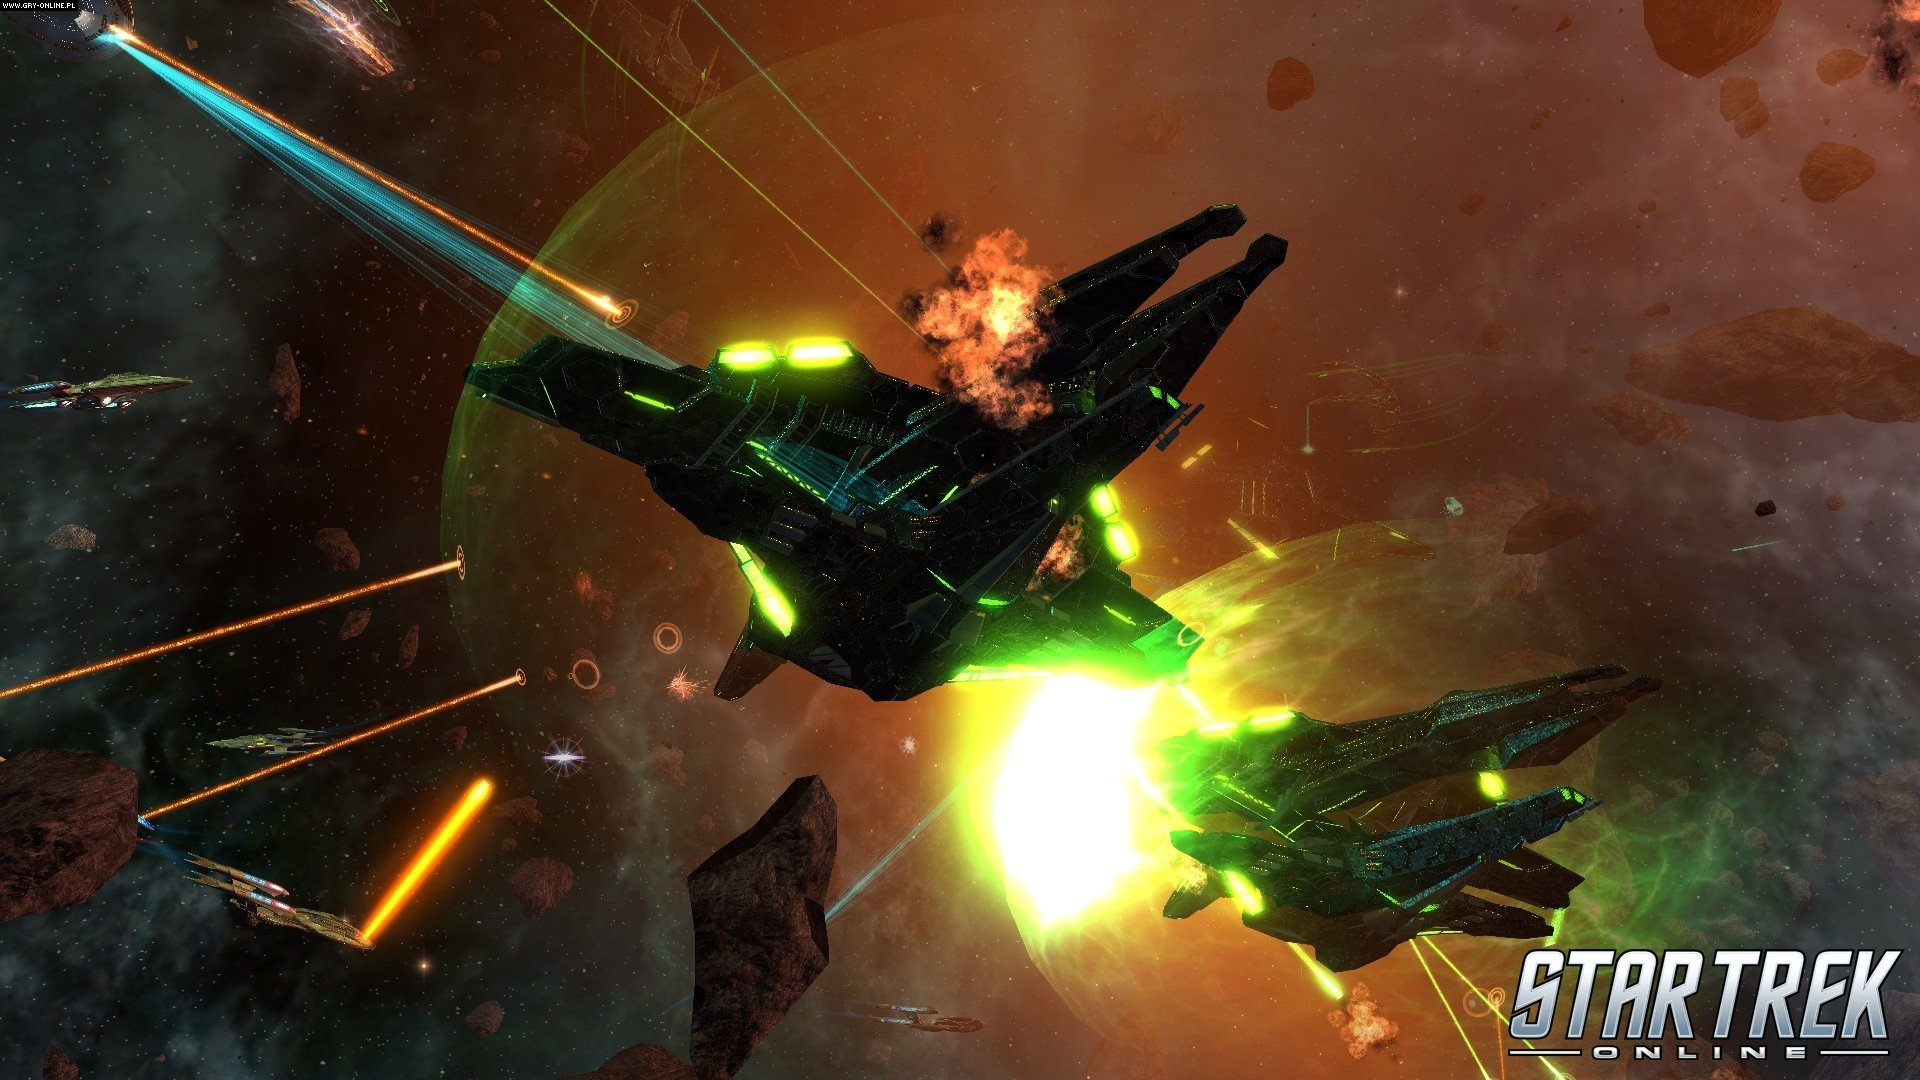 Star Trek Online PC Gry Screen 6/232, Cryptic Studios, Atari / Infogrames